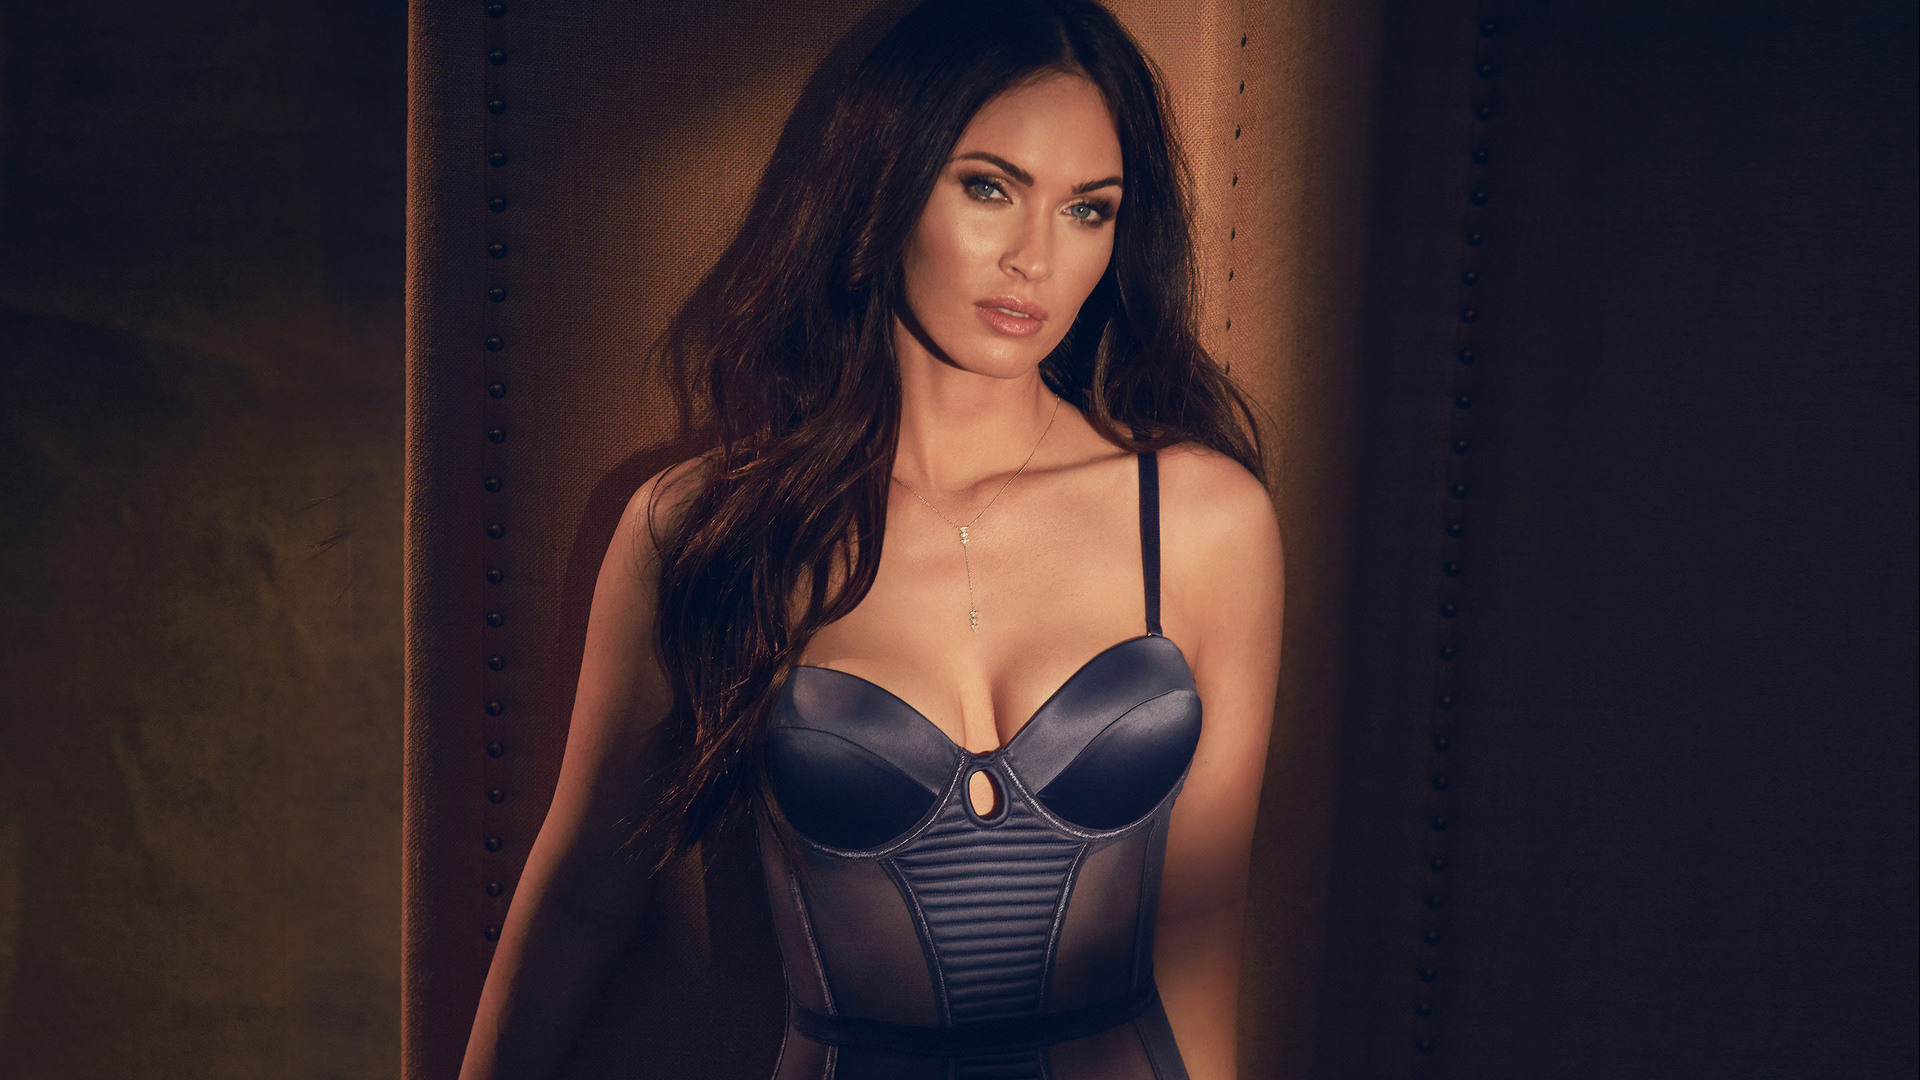 1920x1080 megan fox fredericks lingerie photoshoot laptop full hd